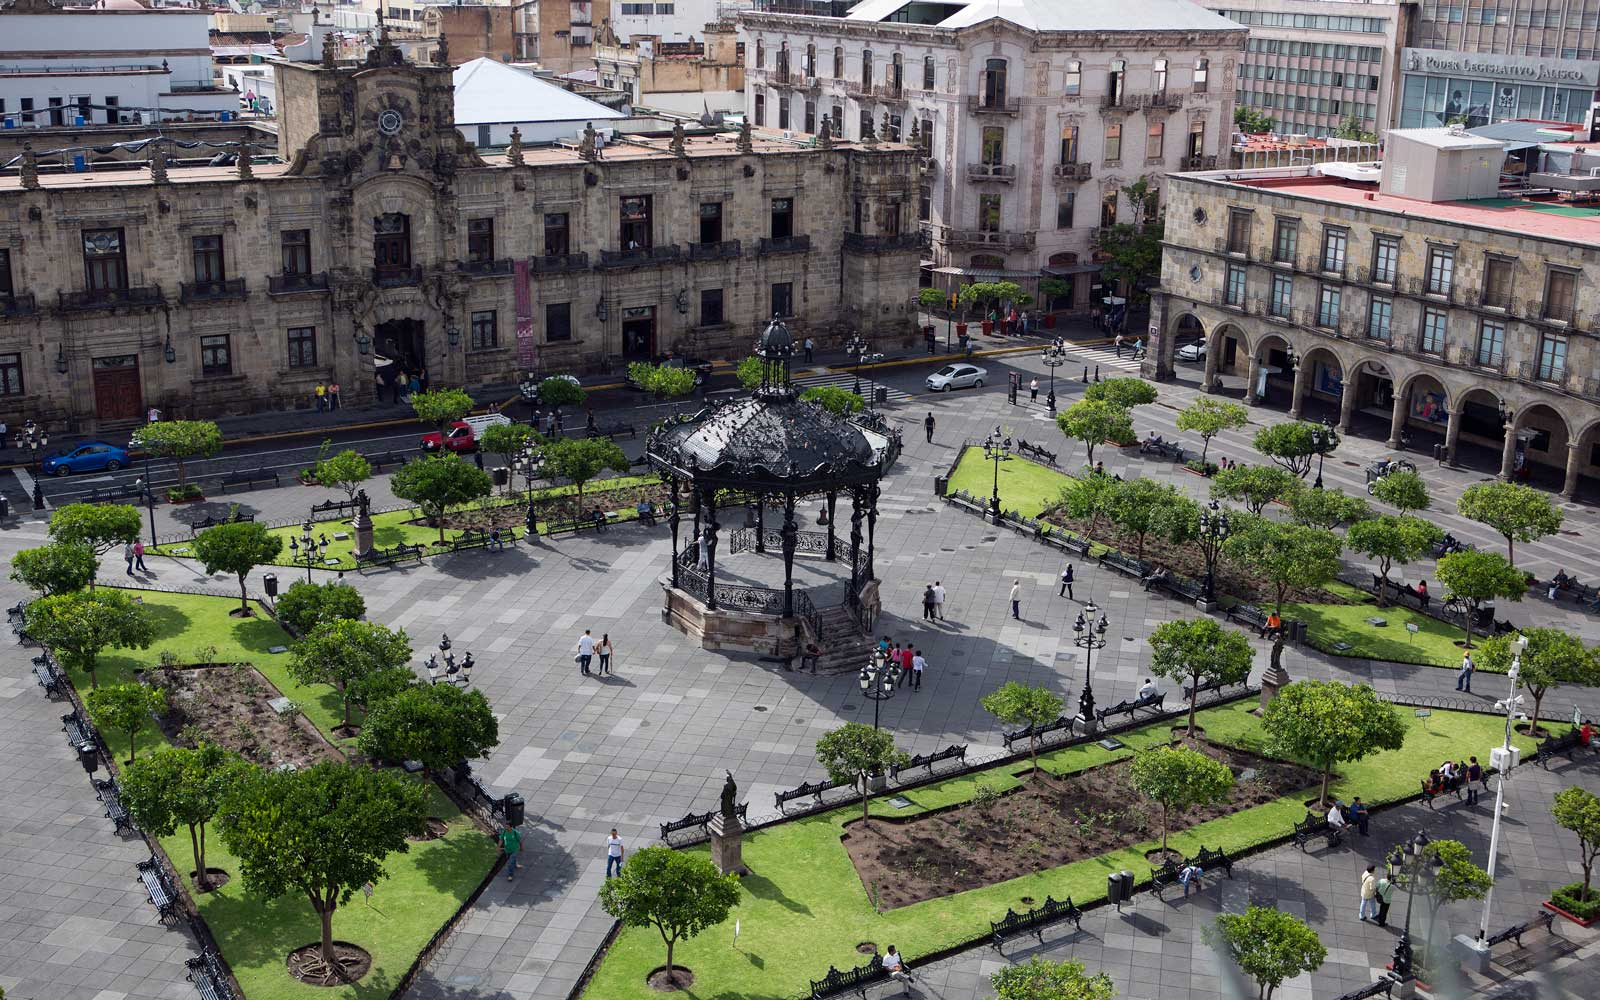 Main Plaza in Guadalajara, Mexico